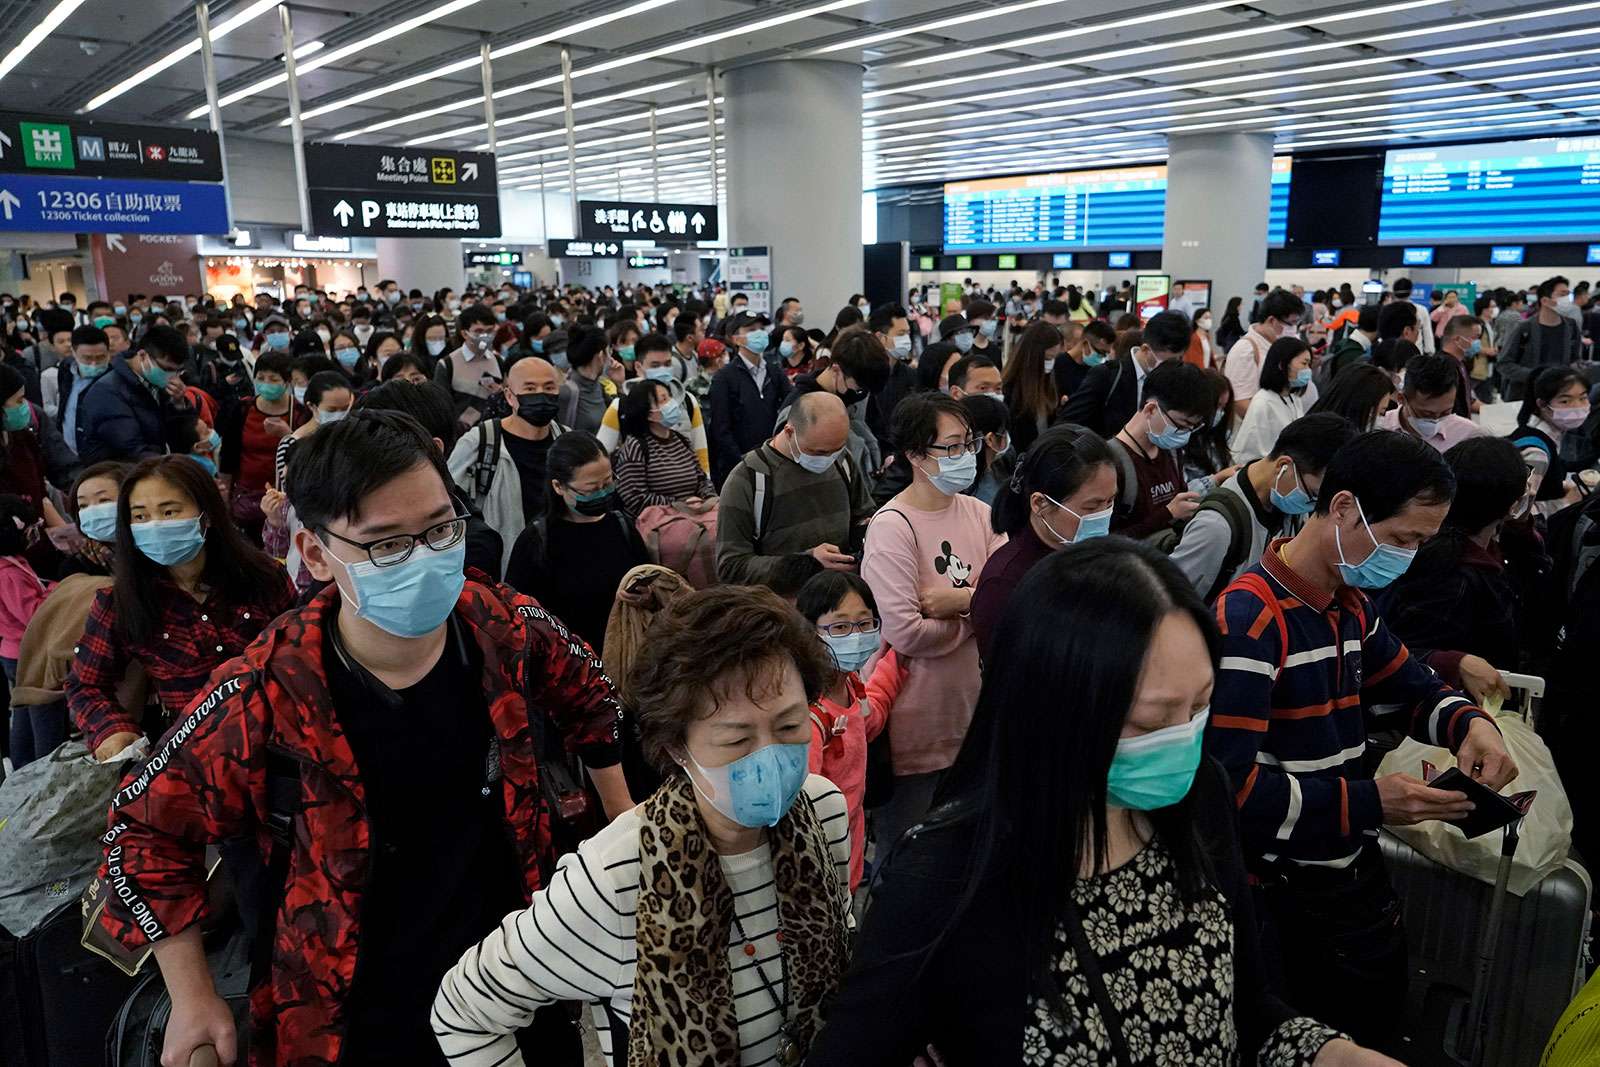 Passengers wait in the departure hall of the high speed train station in Hong Kong on January 23.